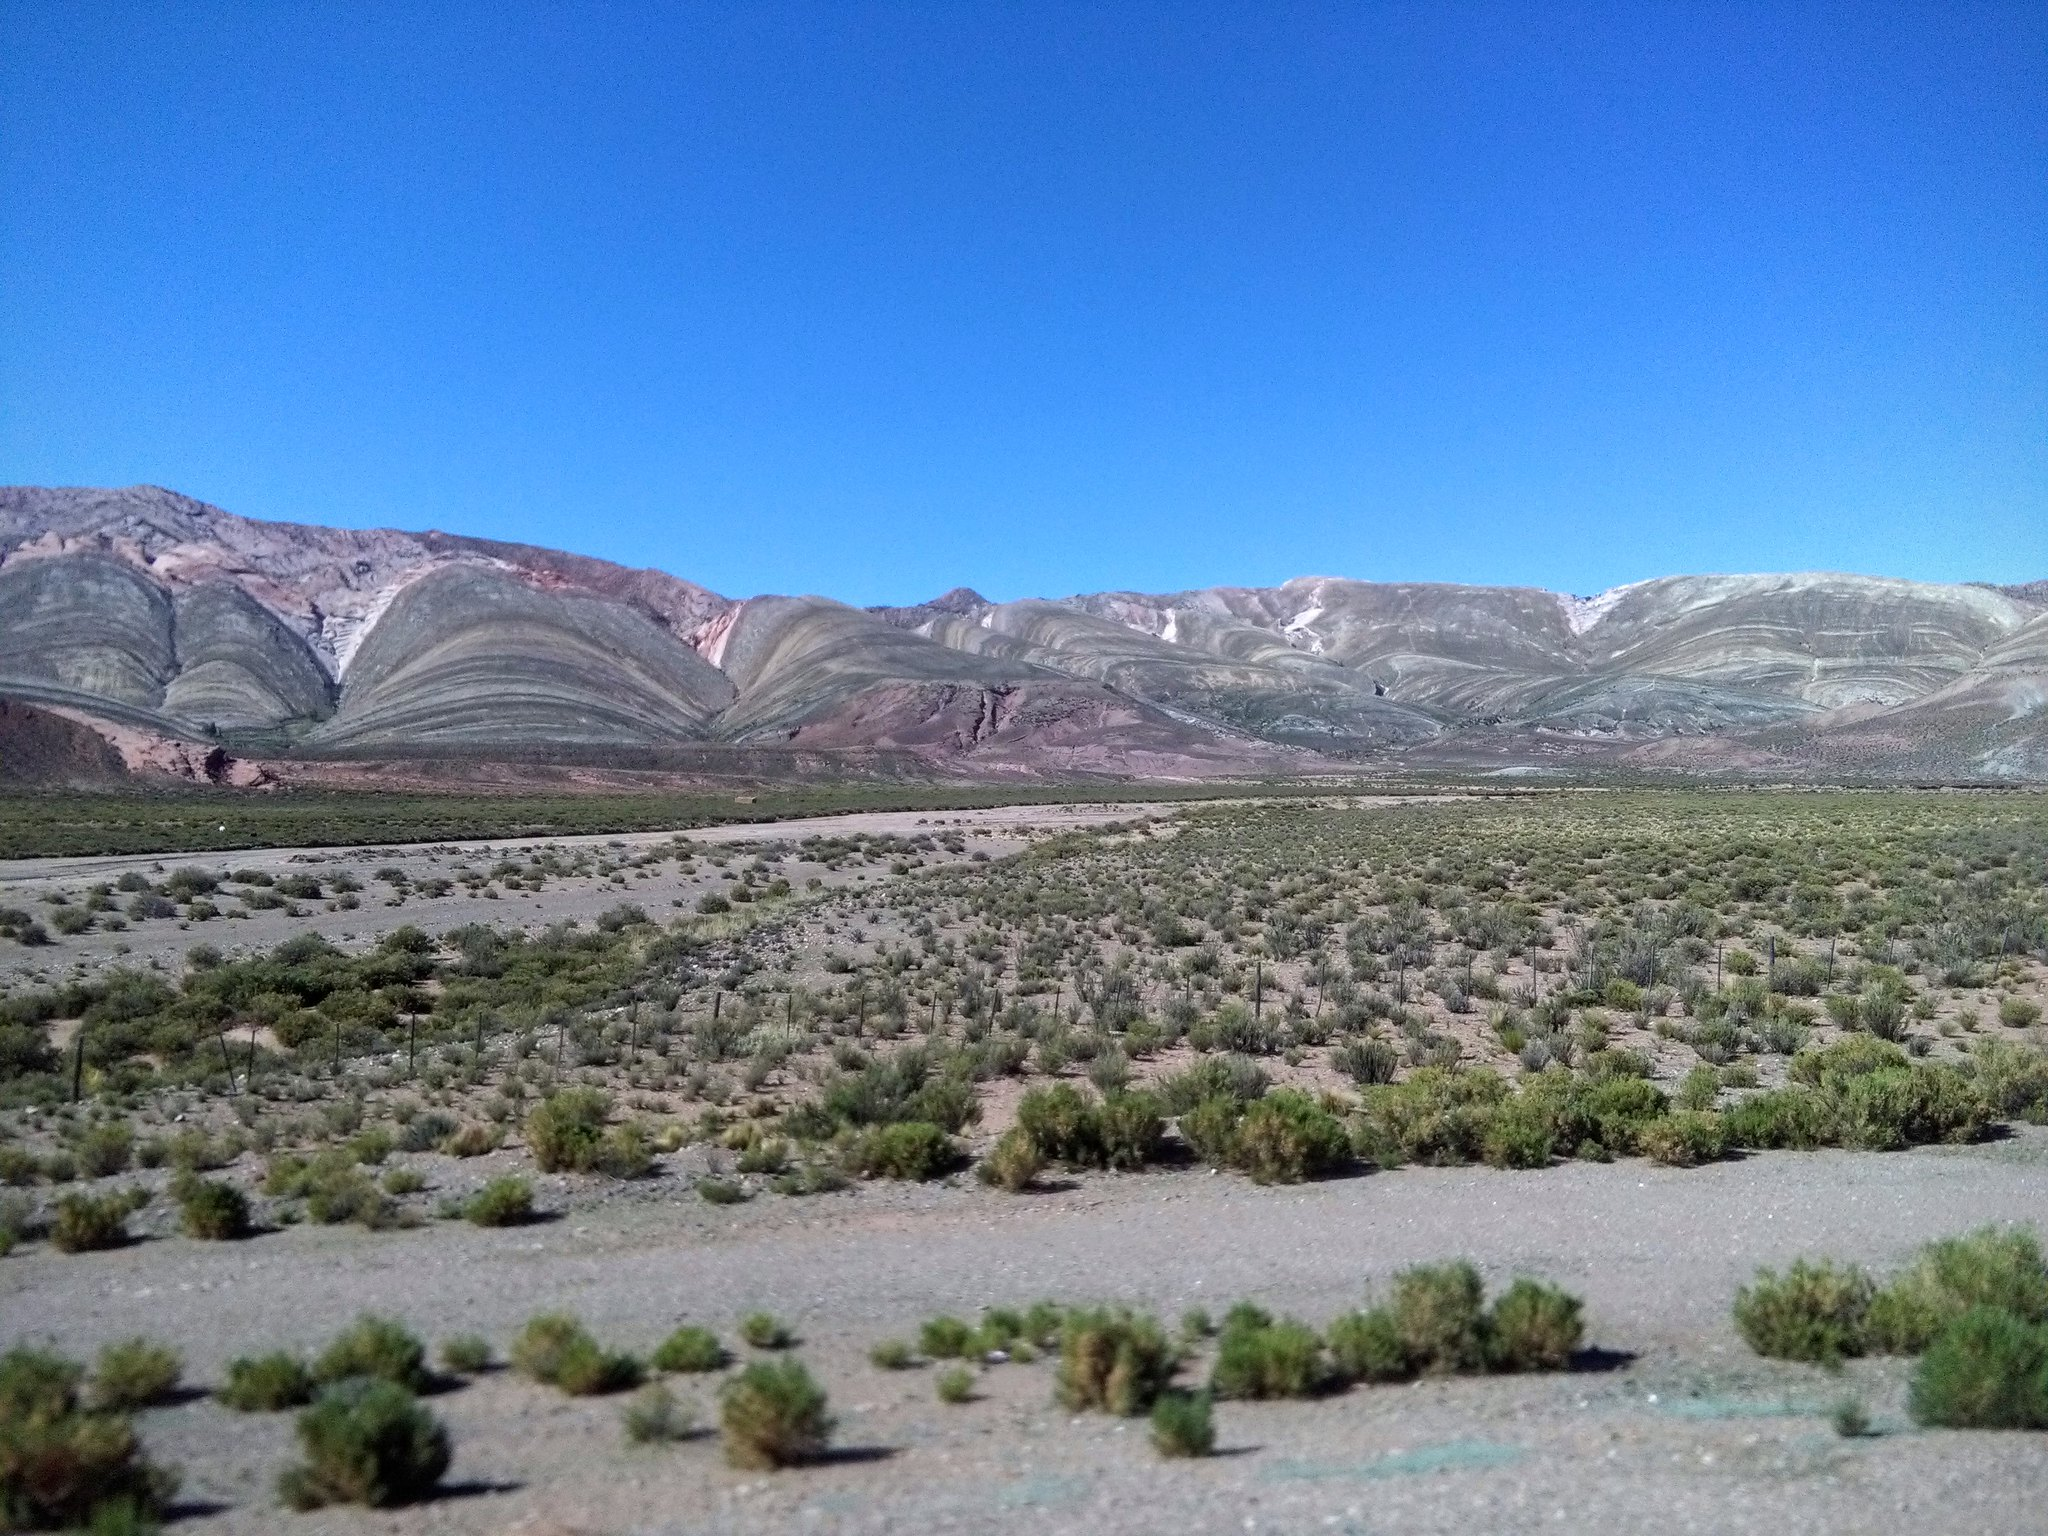 Banded mountains on the way to Salta